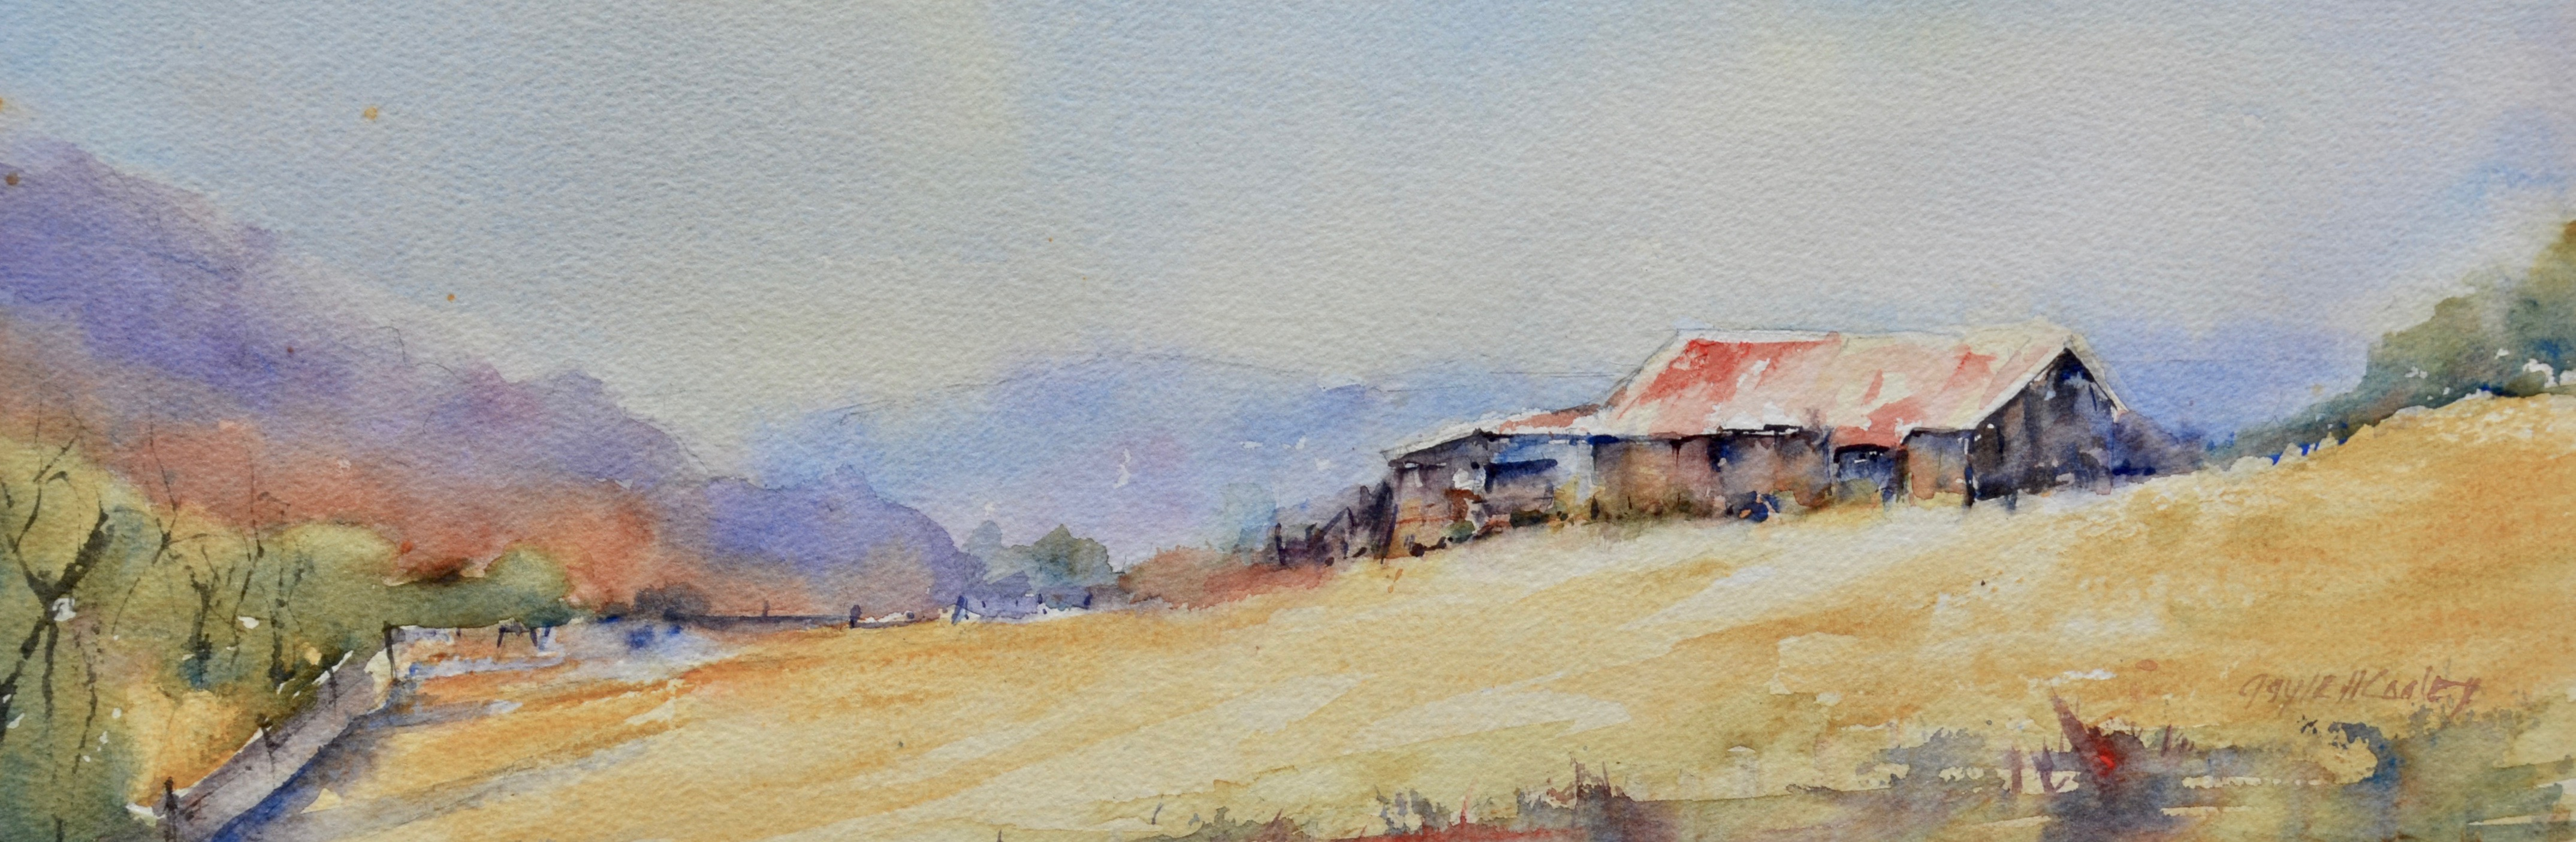 Havens-Fall Barn, Blue Ridge Parkway